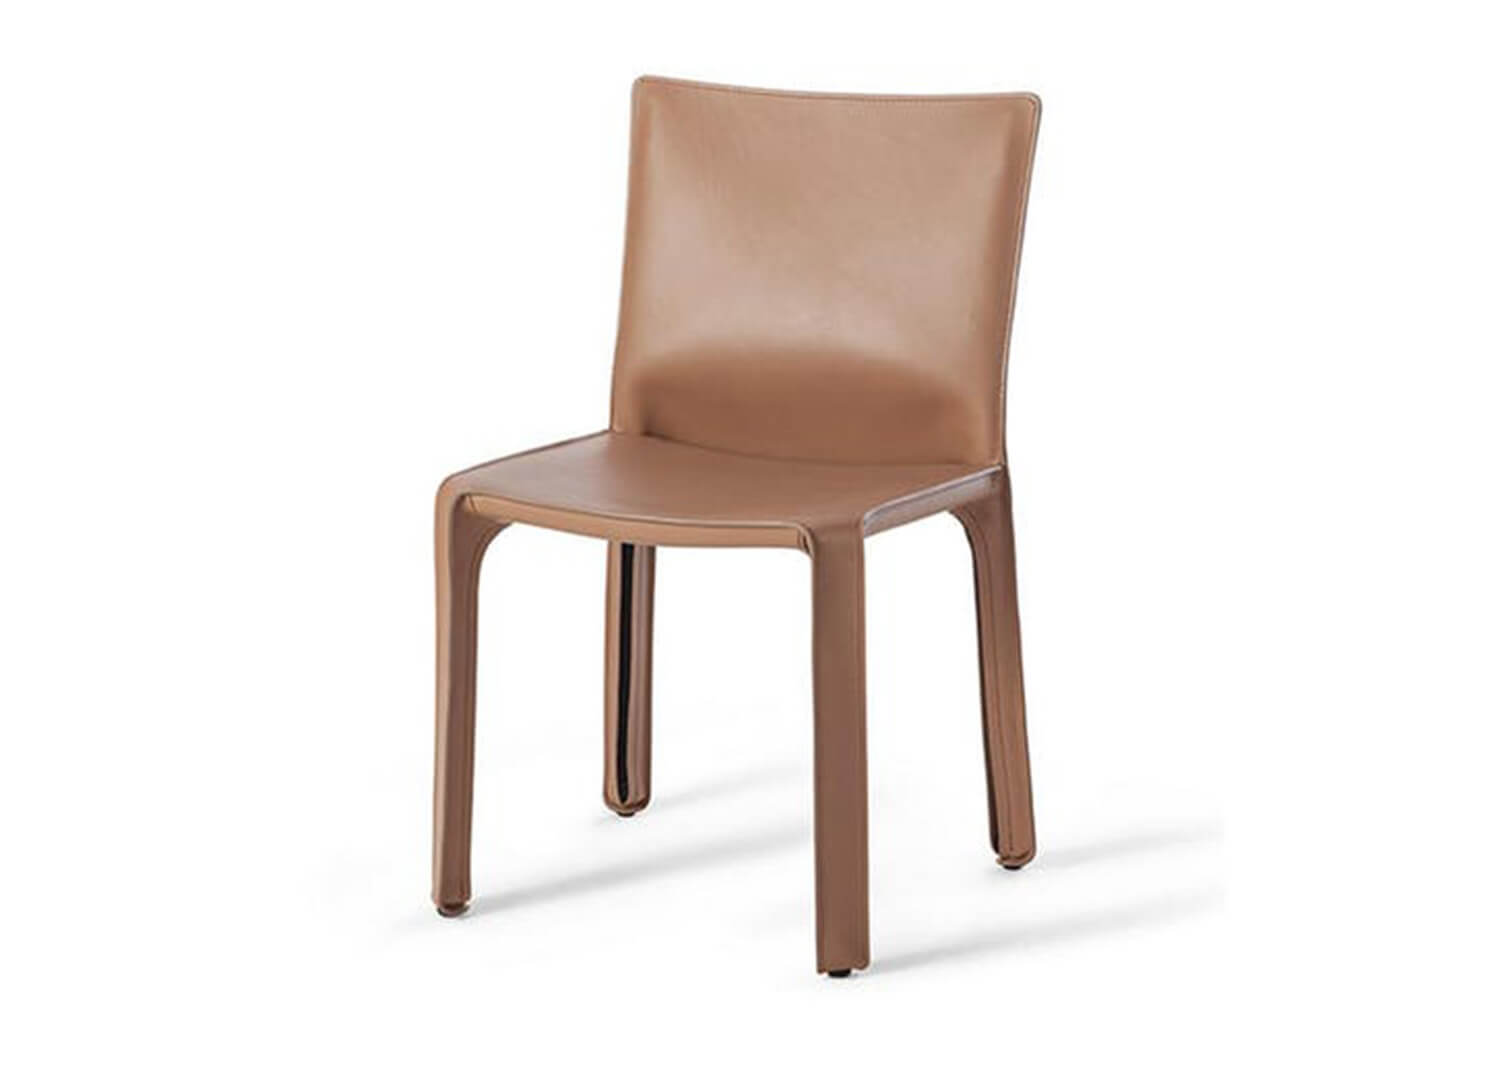 est living design directory cassina 412 cab chair space.01